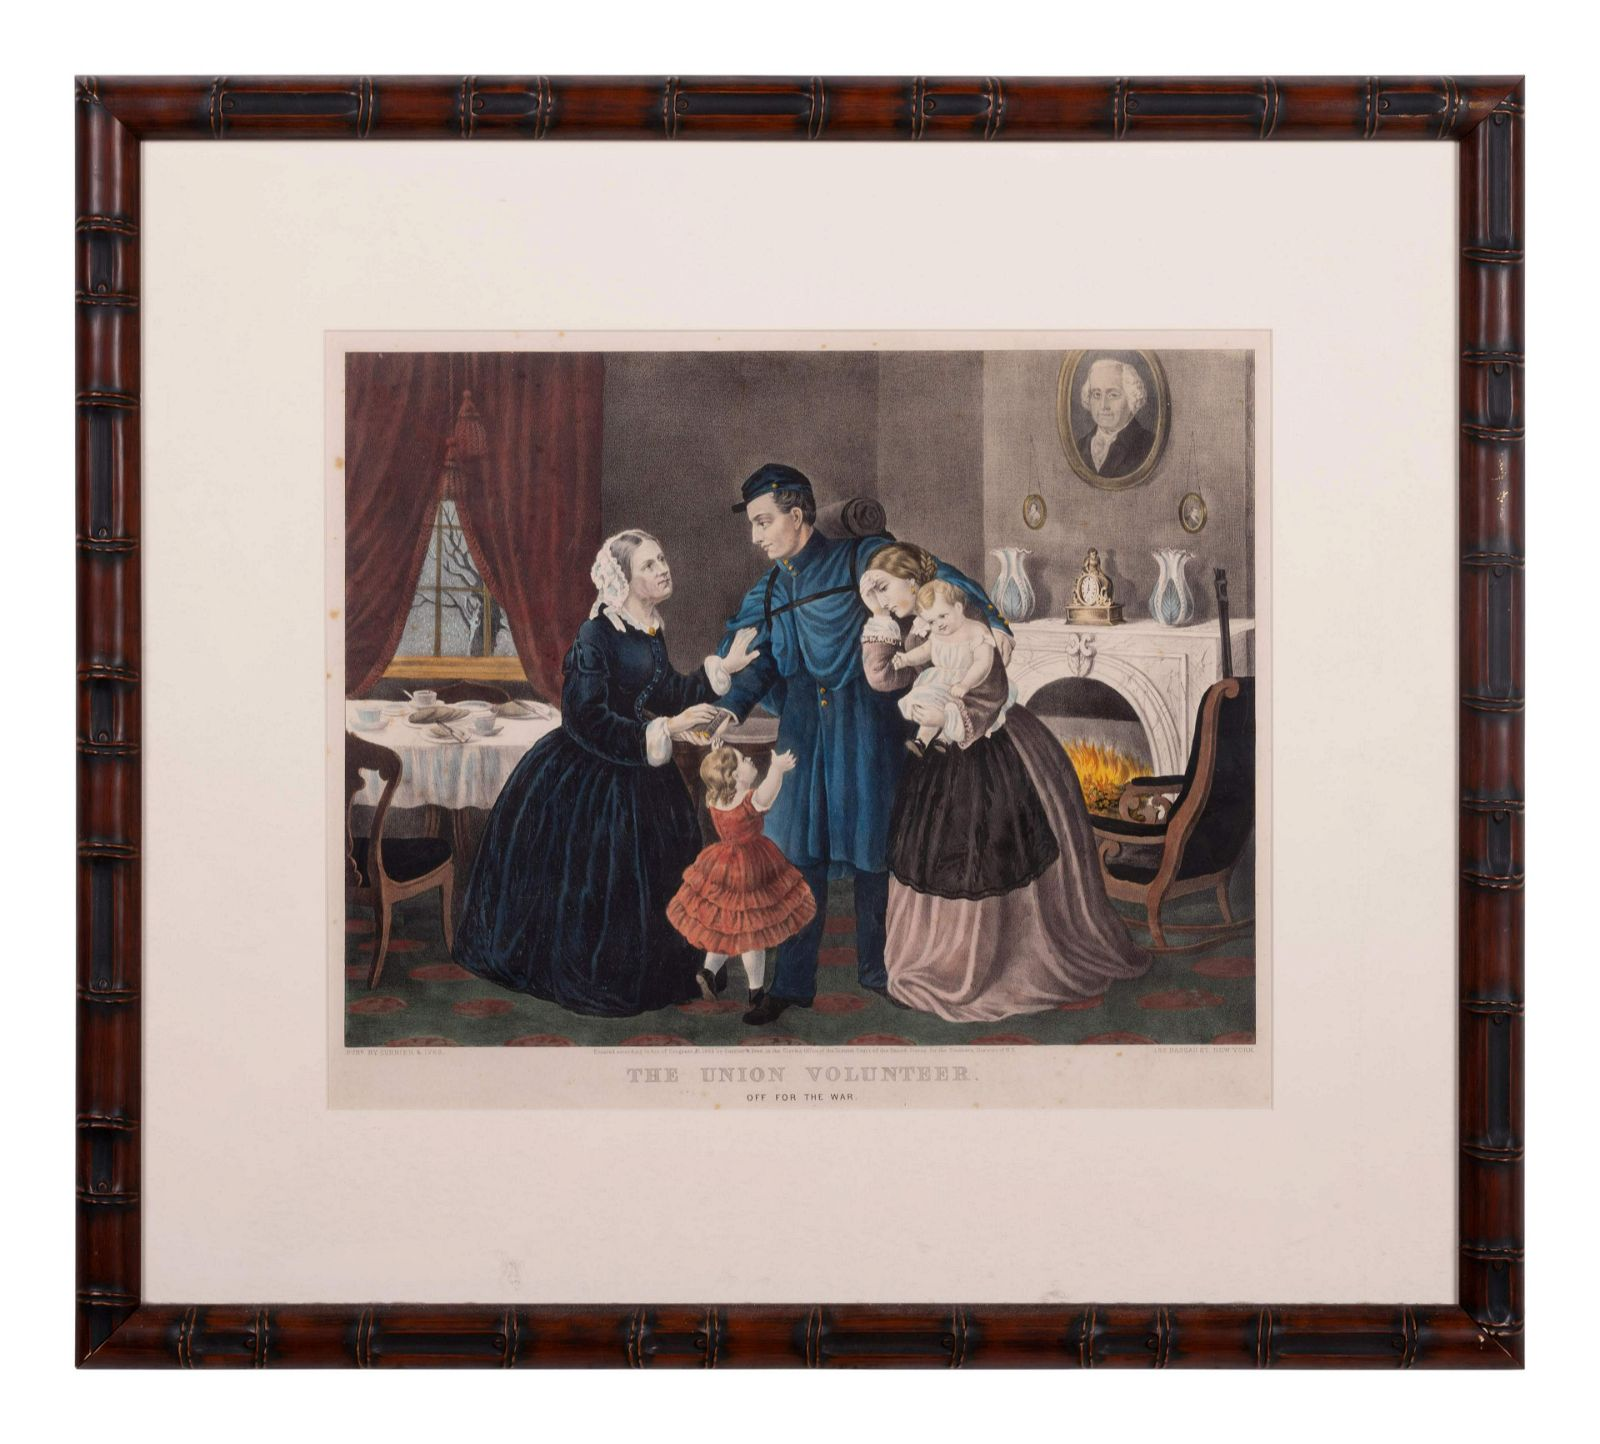 Currier and Ives, (Nathaniel Currier, 1813-1888 and